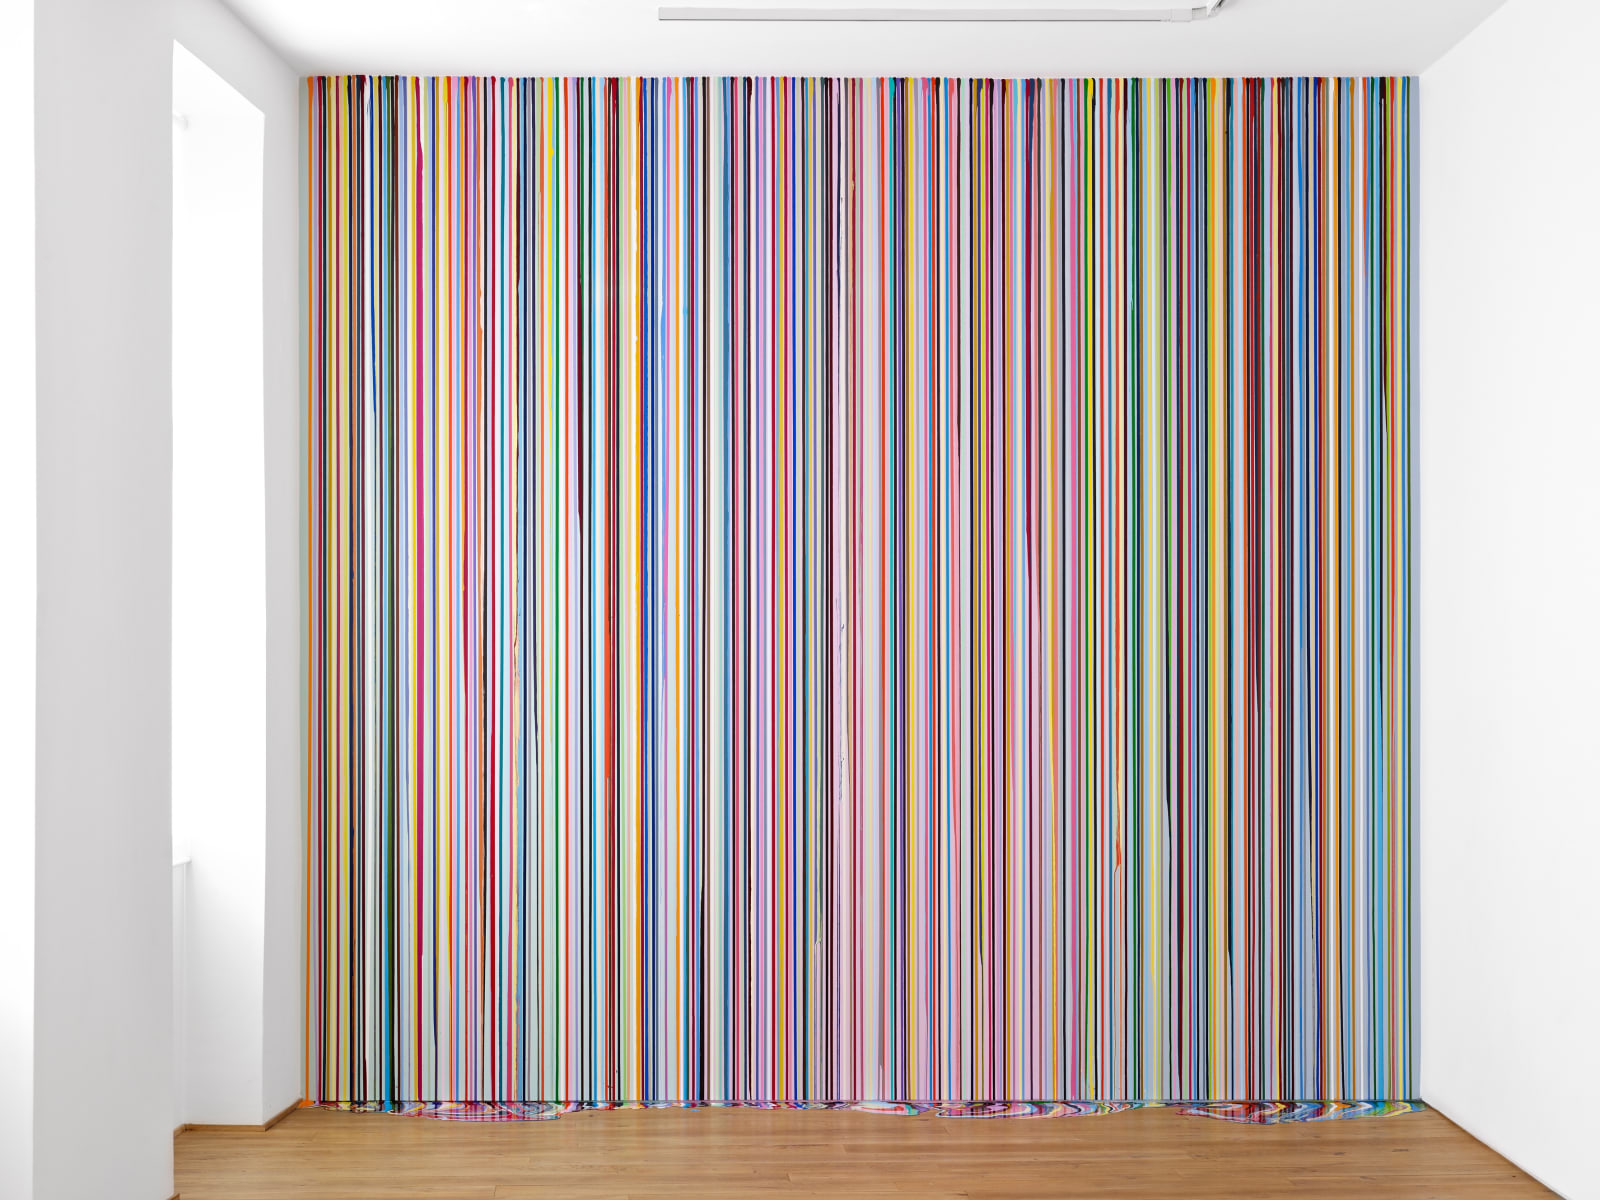 Ian Davenport Ingleby Wall Painting (after Carpaccio), 2011